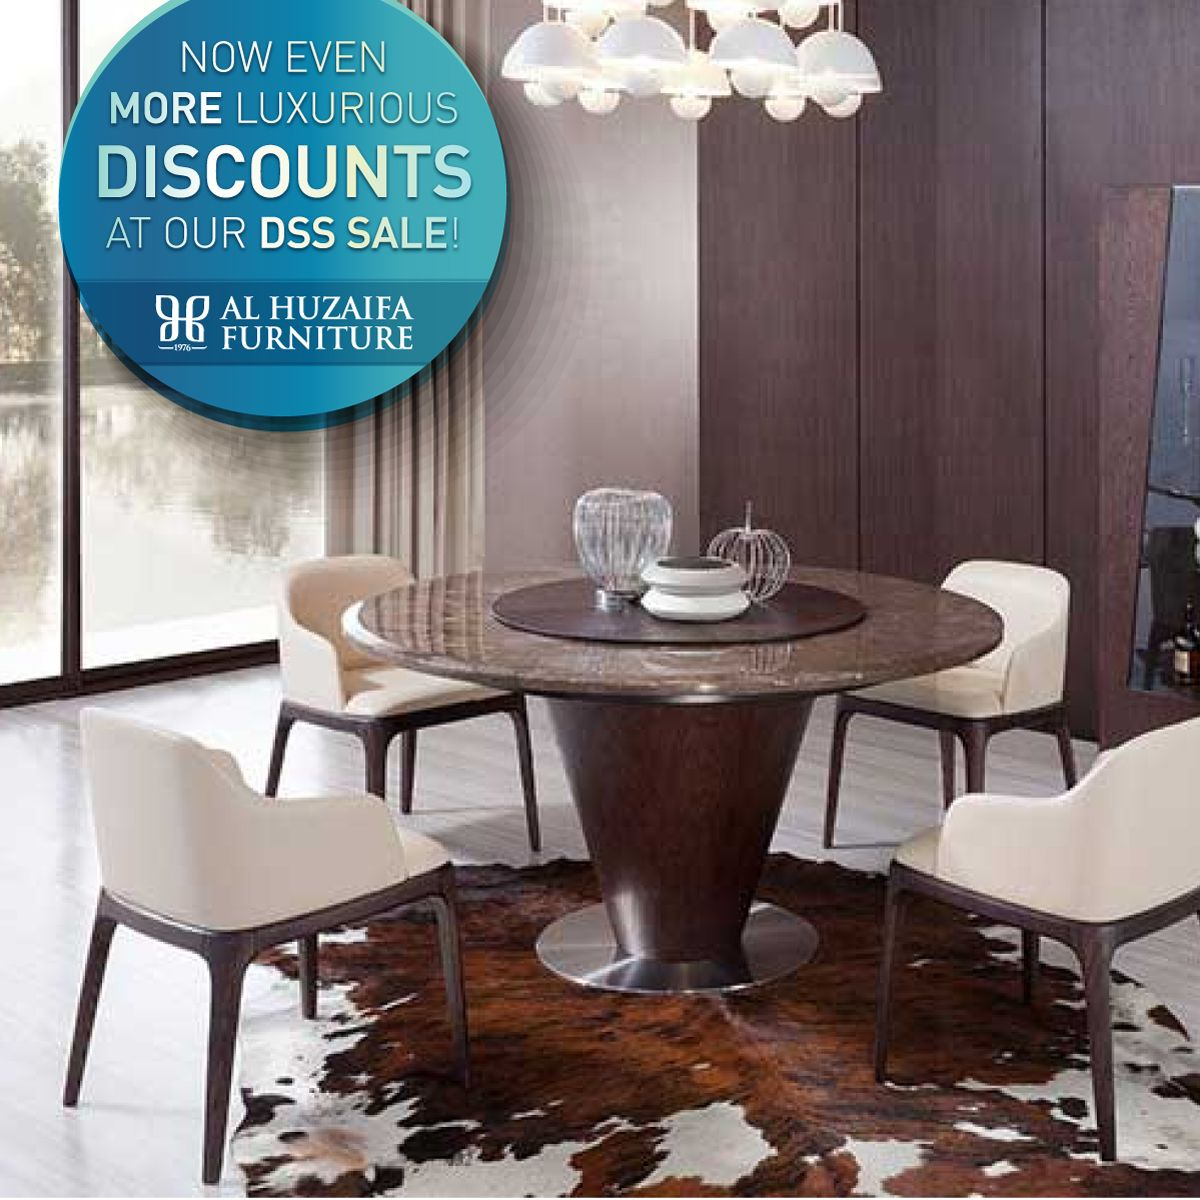 Fabulous Dss Deals On Our Fabulous Collections At Al Huzaifa